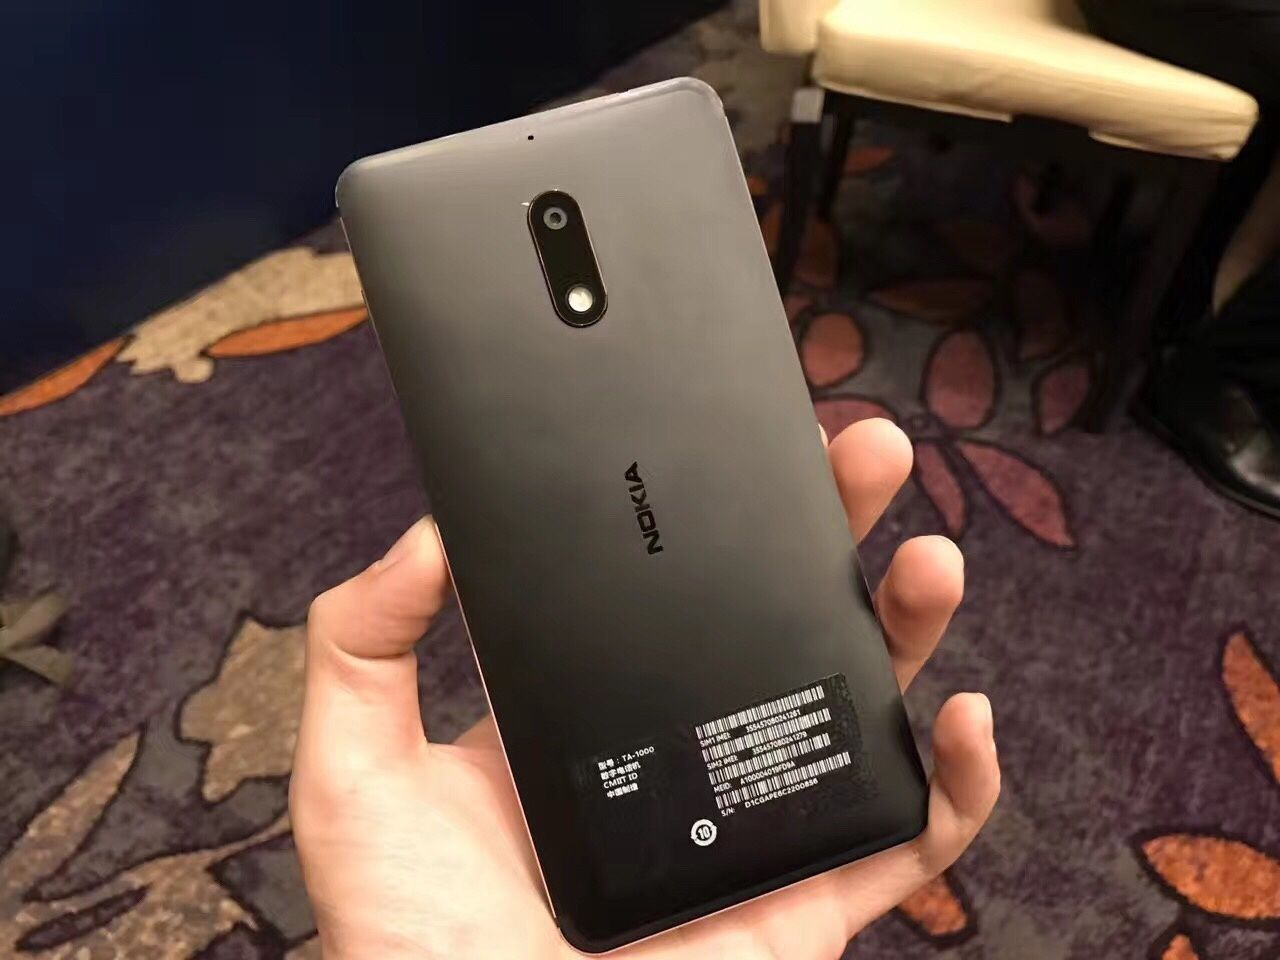 Nokia 6 Arte Black Video Nokia 6 Vs Nokia 5 Vs Nokia 3 What Makes Them Different